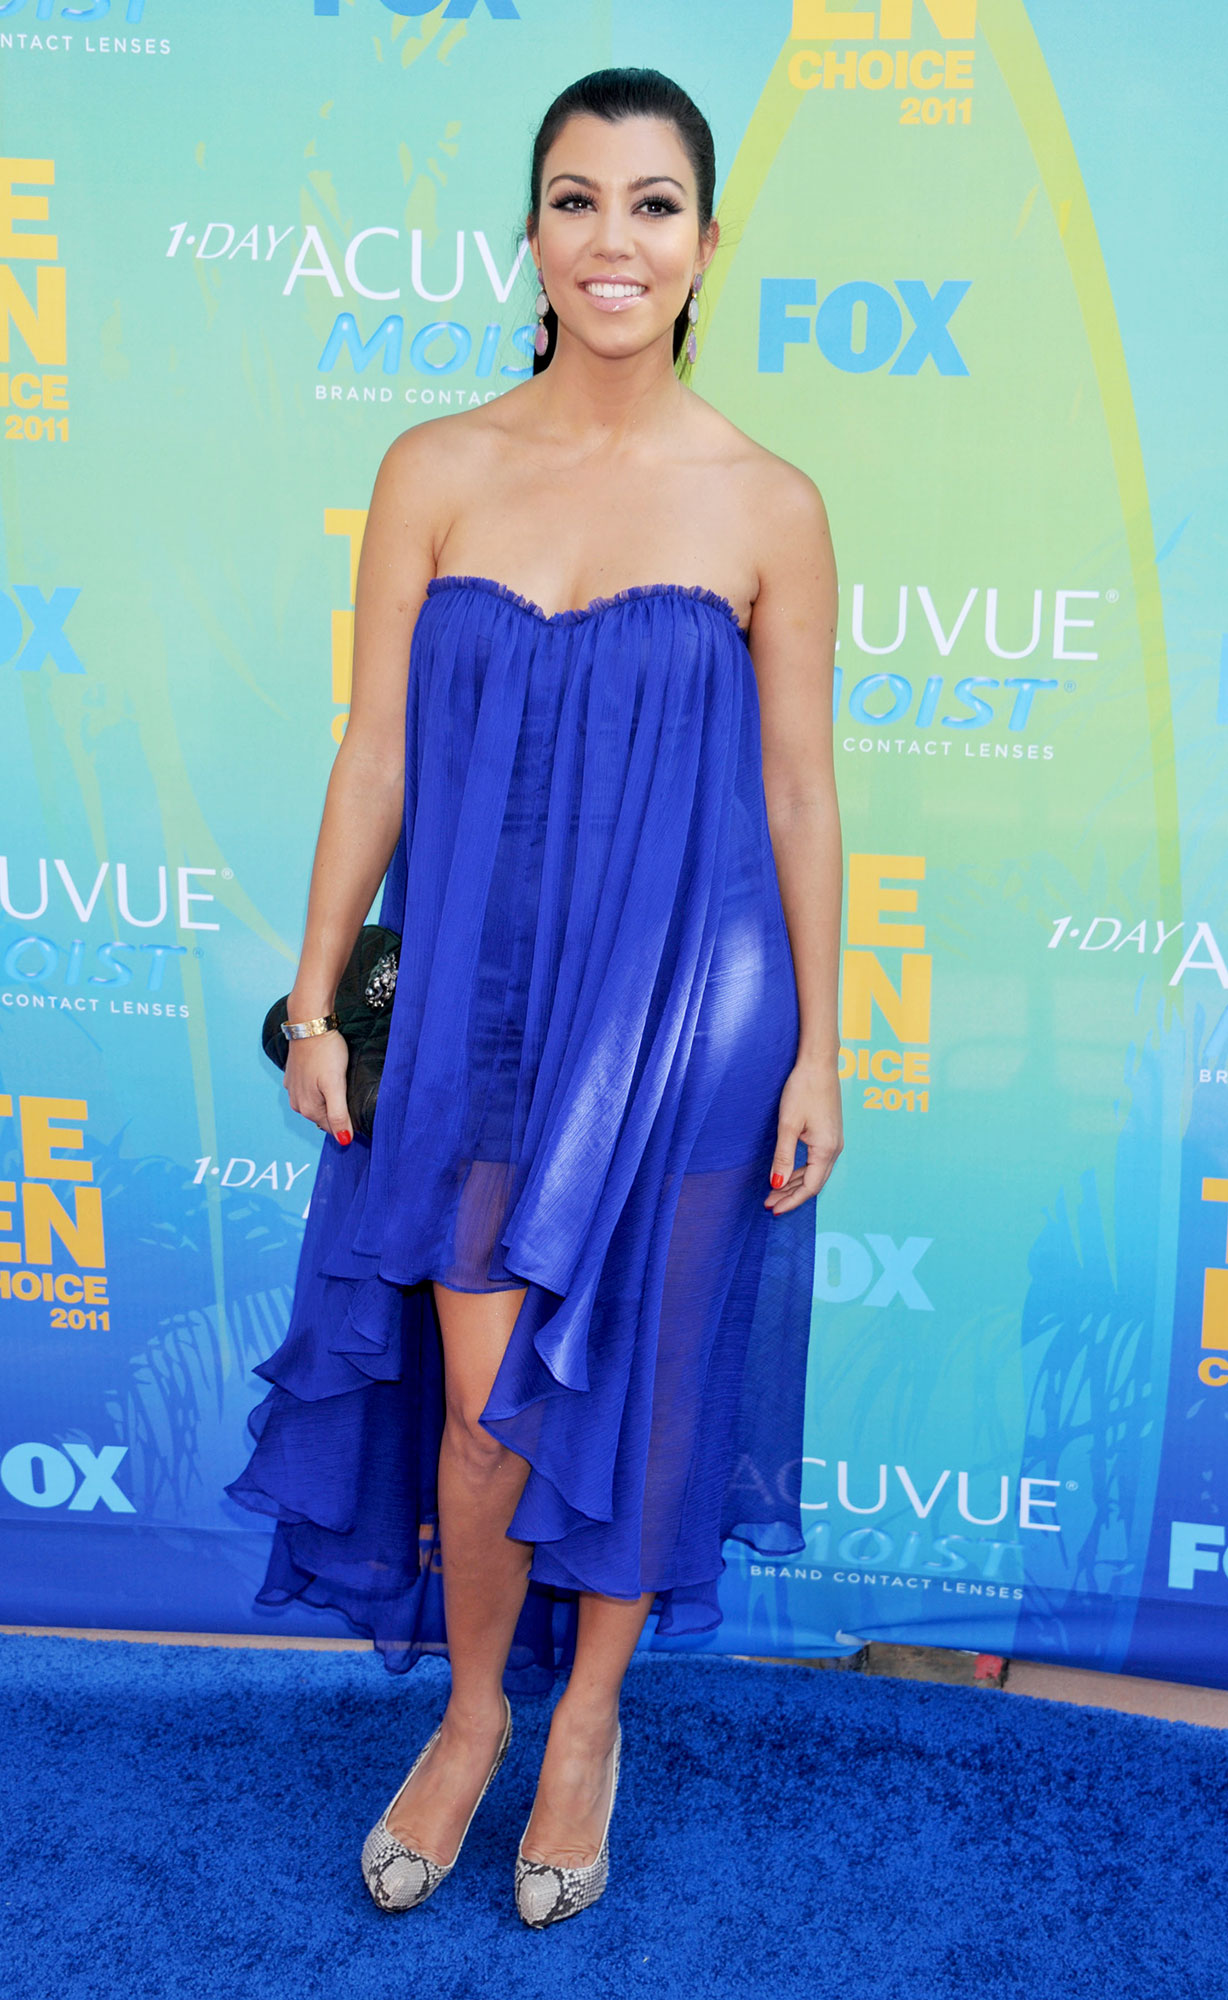 Happy 40th Birthday, Kourtney Kardashian - At the Teen Choice Awards, the brunette beauty rocked a cobalt blue Blaque Label frock.